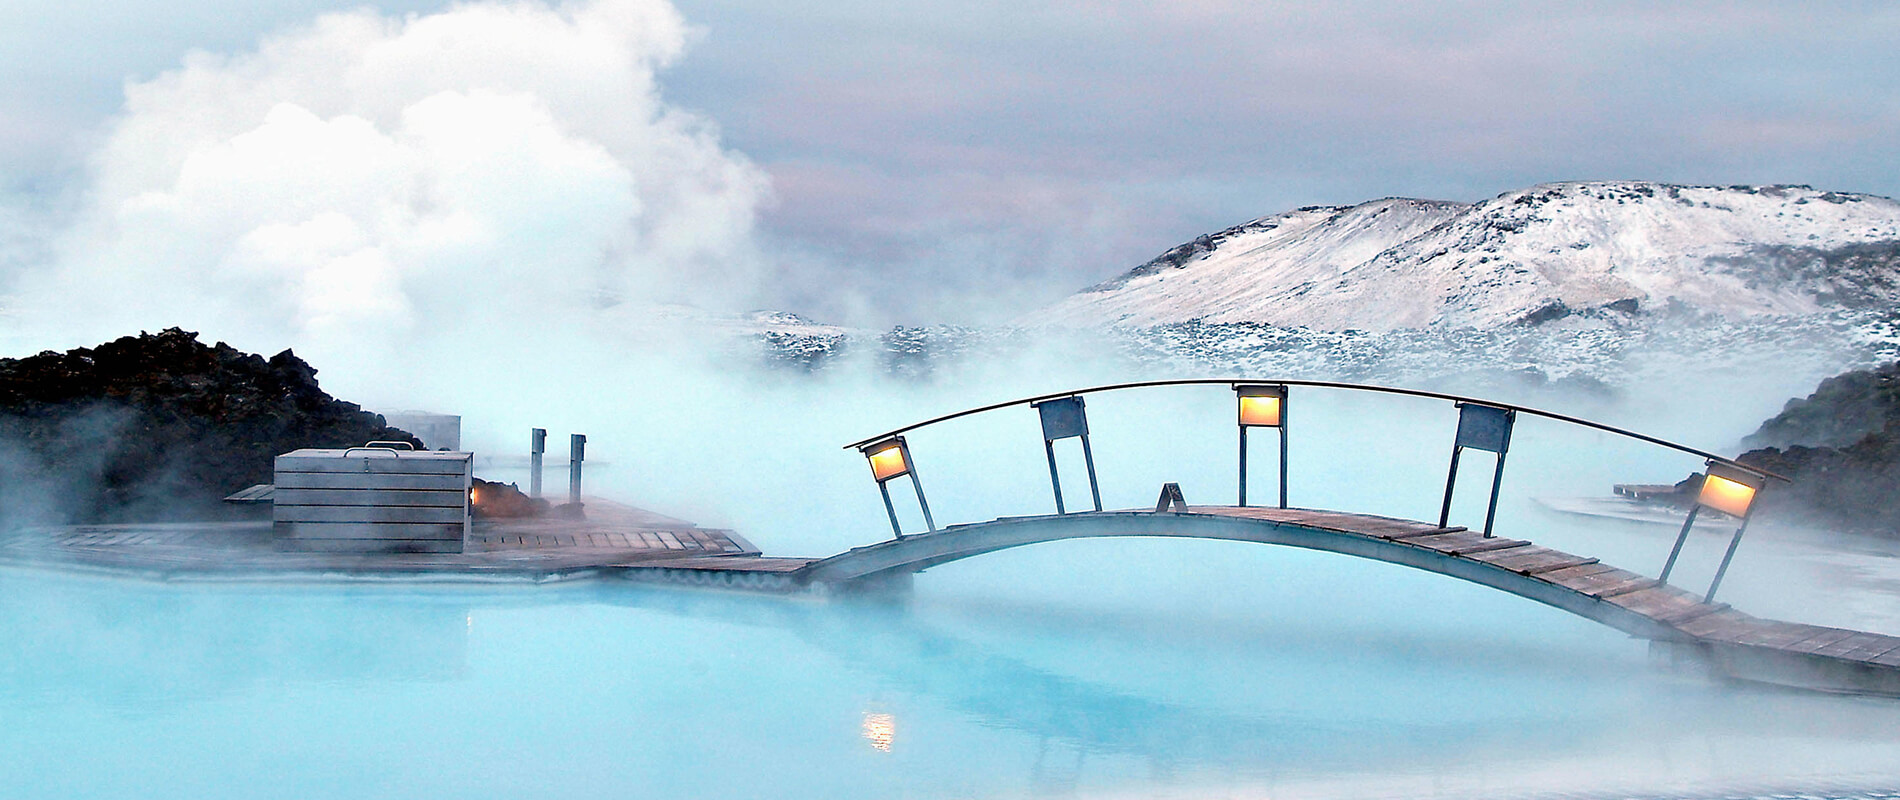 Blue Lagoon, the most famous geothermal pool in Iceland